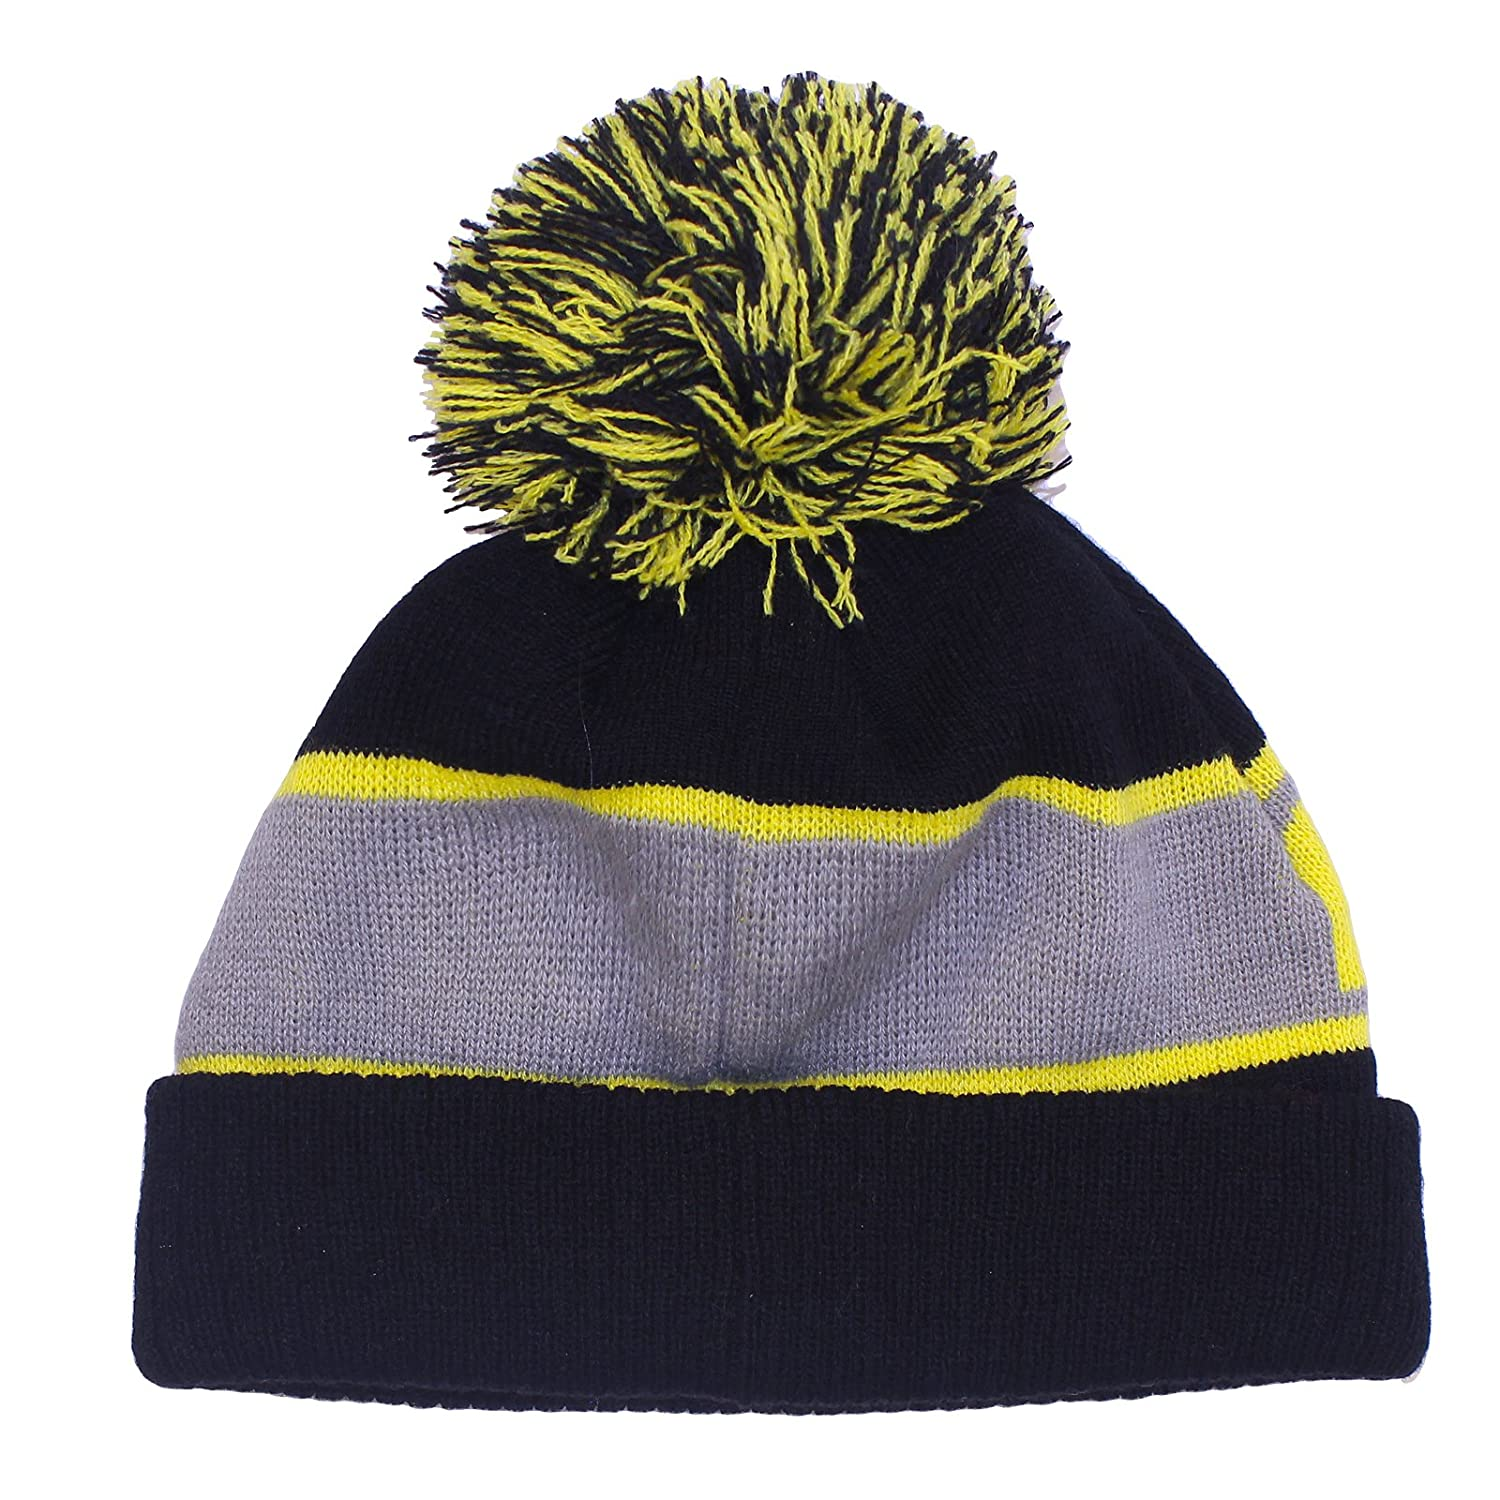 Official Licensed Boys Kids Pokemon Pikachu Winter Bobble Beanie Hat Age  11-13 Years  Amazon.co.uk  Clothing 3ec42cbad908